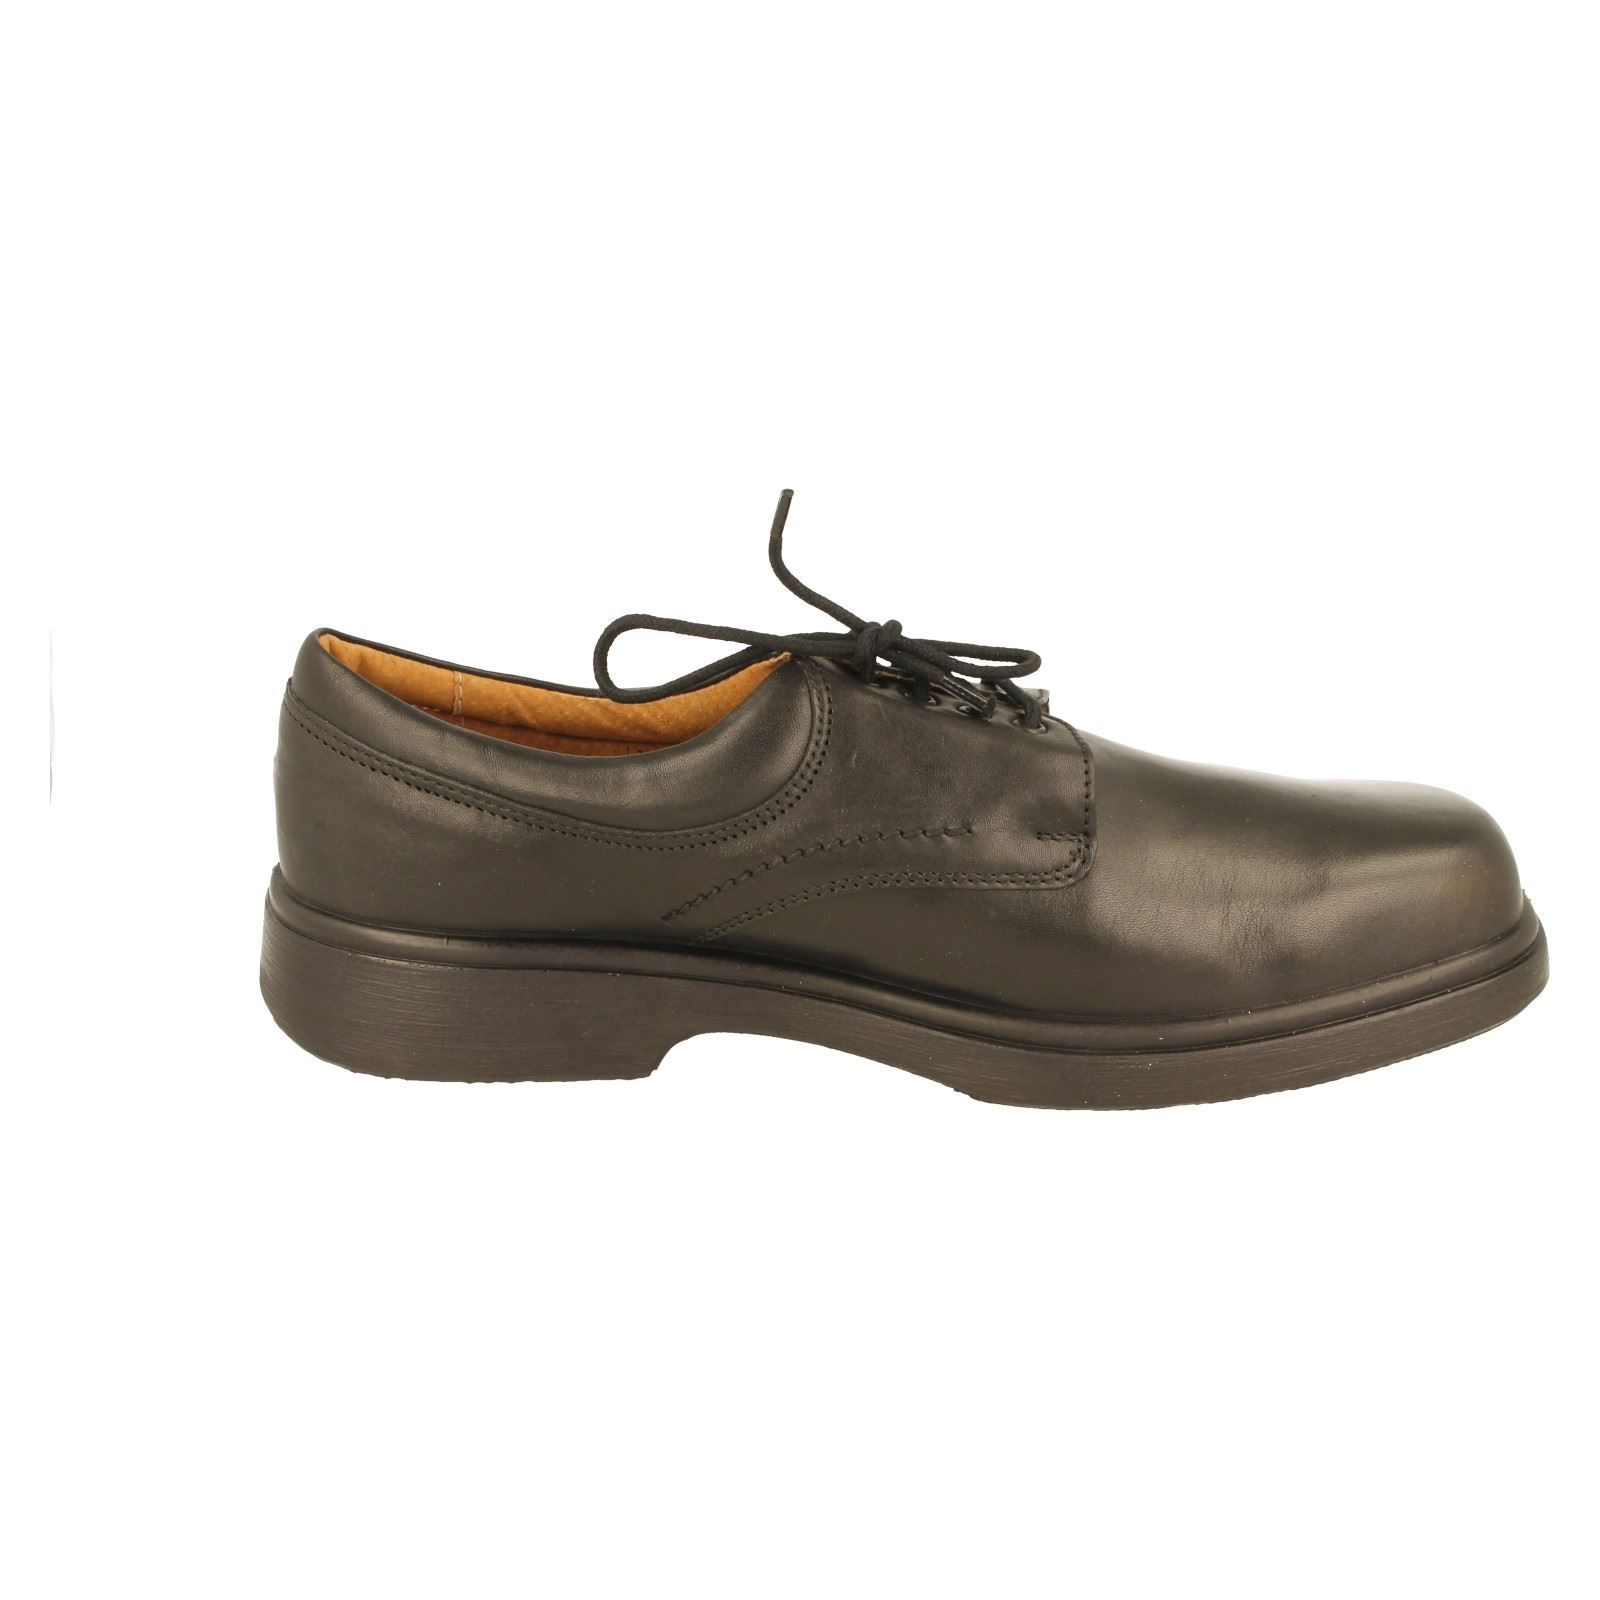 Mens DB Up Lace Up DB Schuhes Style Shannon-W dca7c9